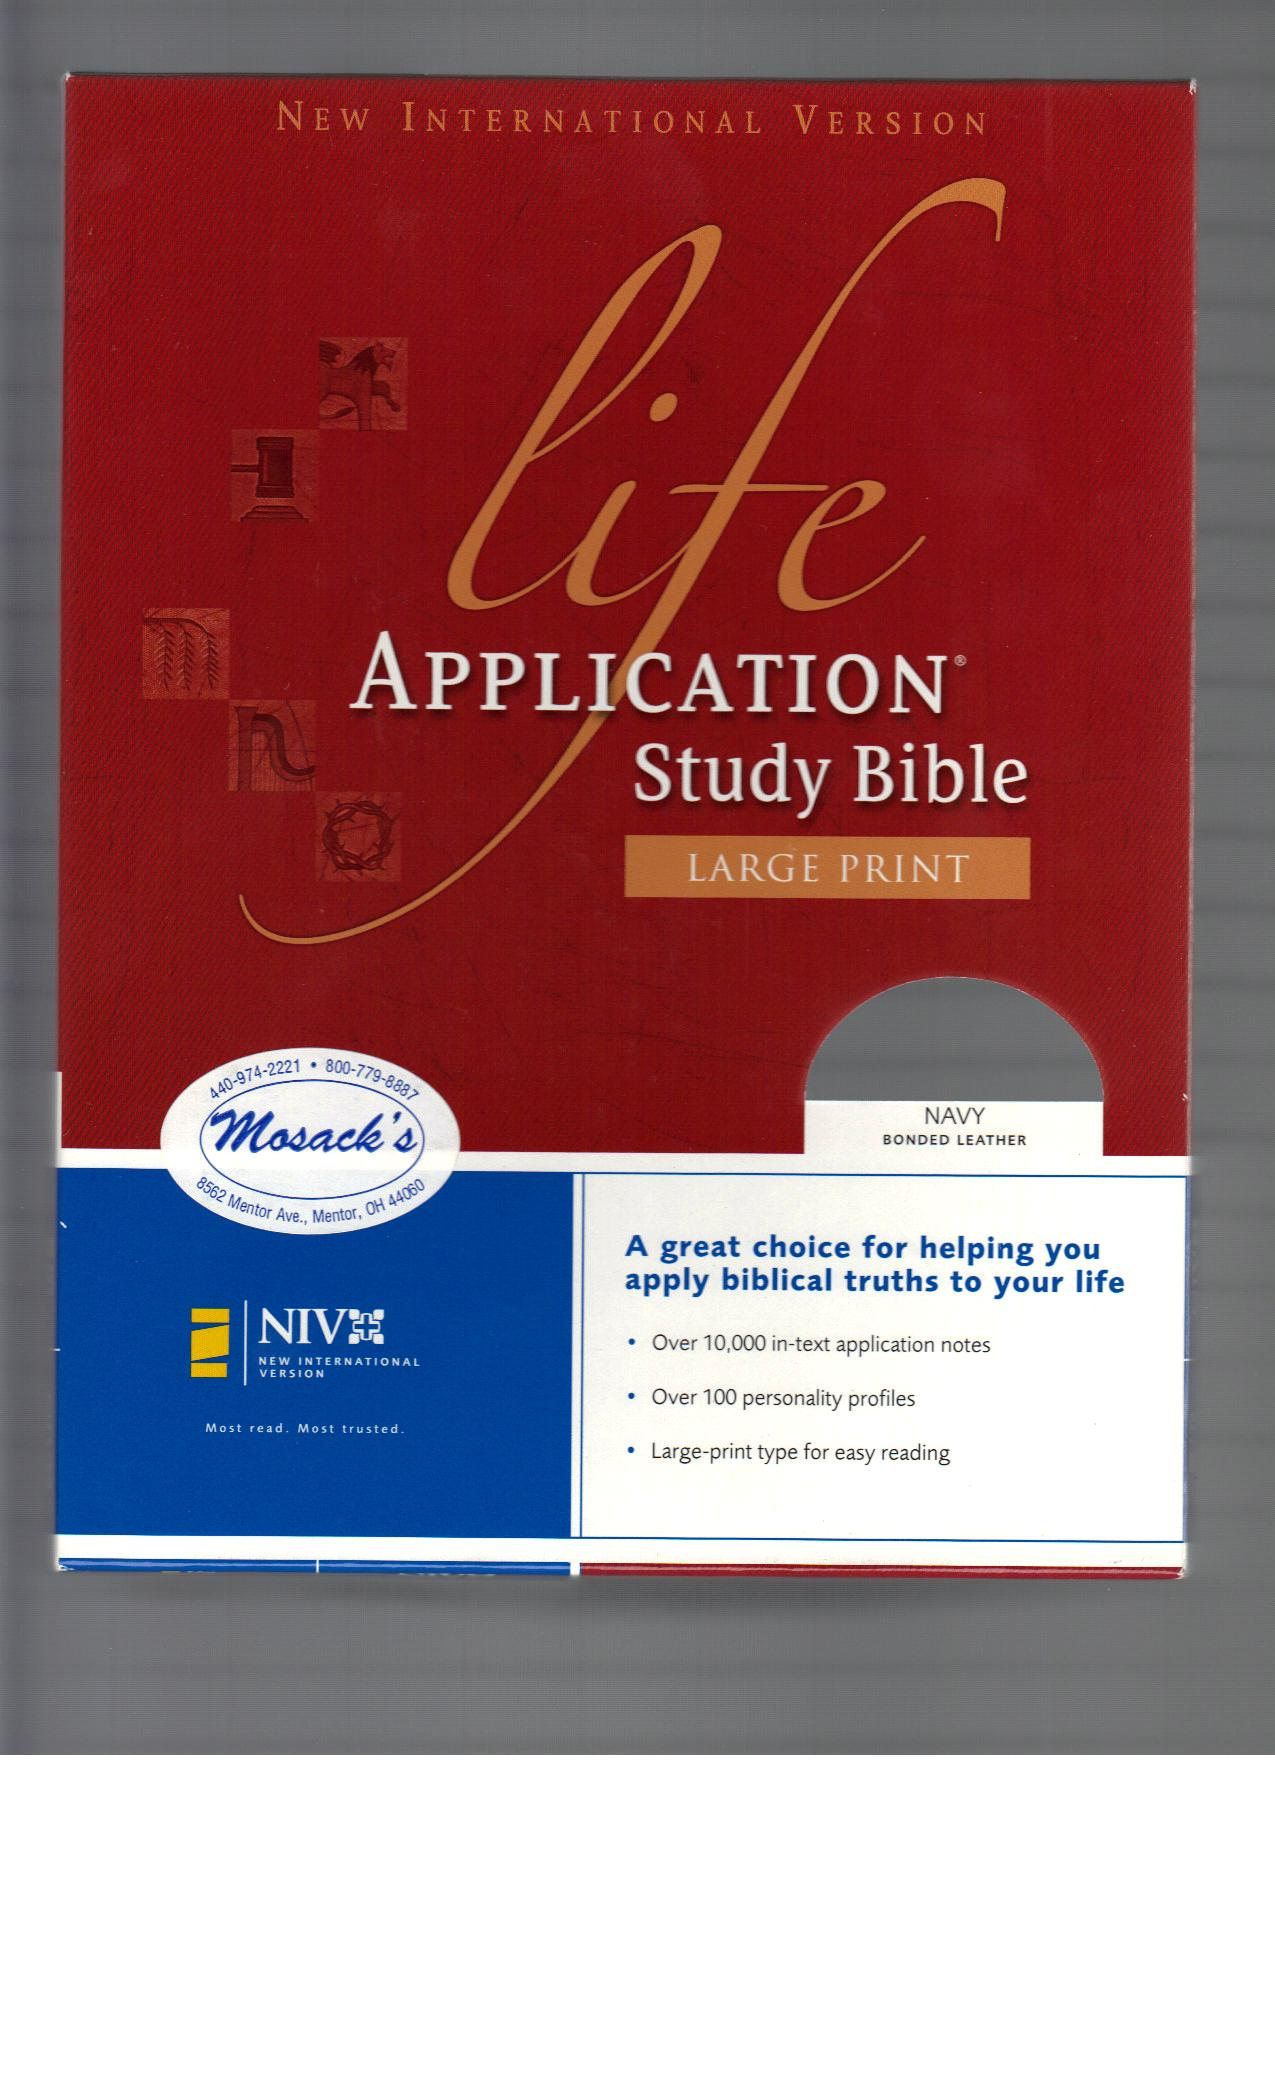 NIV Life Application Study Bible Large Print 108-9780310917588